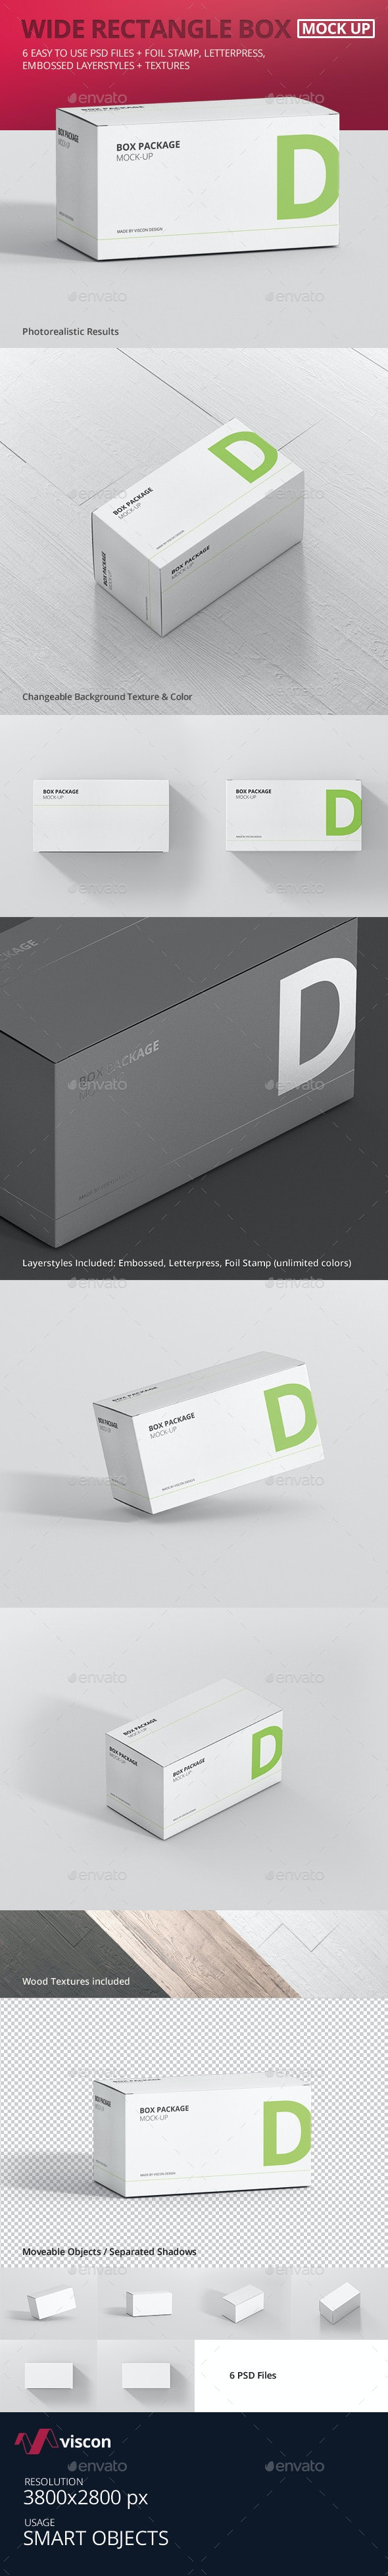 Package Box Mock-Up - Wide Rectangle - Miscellaneous Packaging